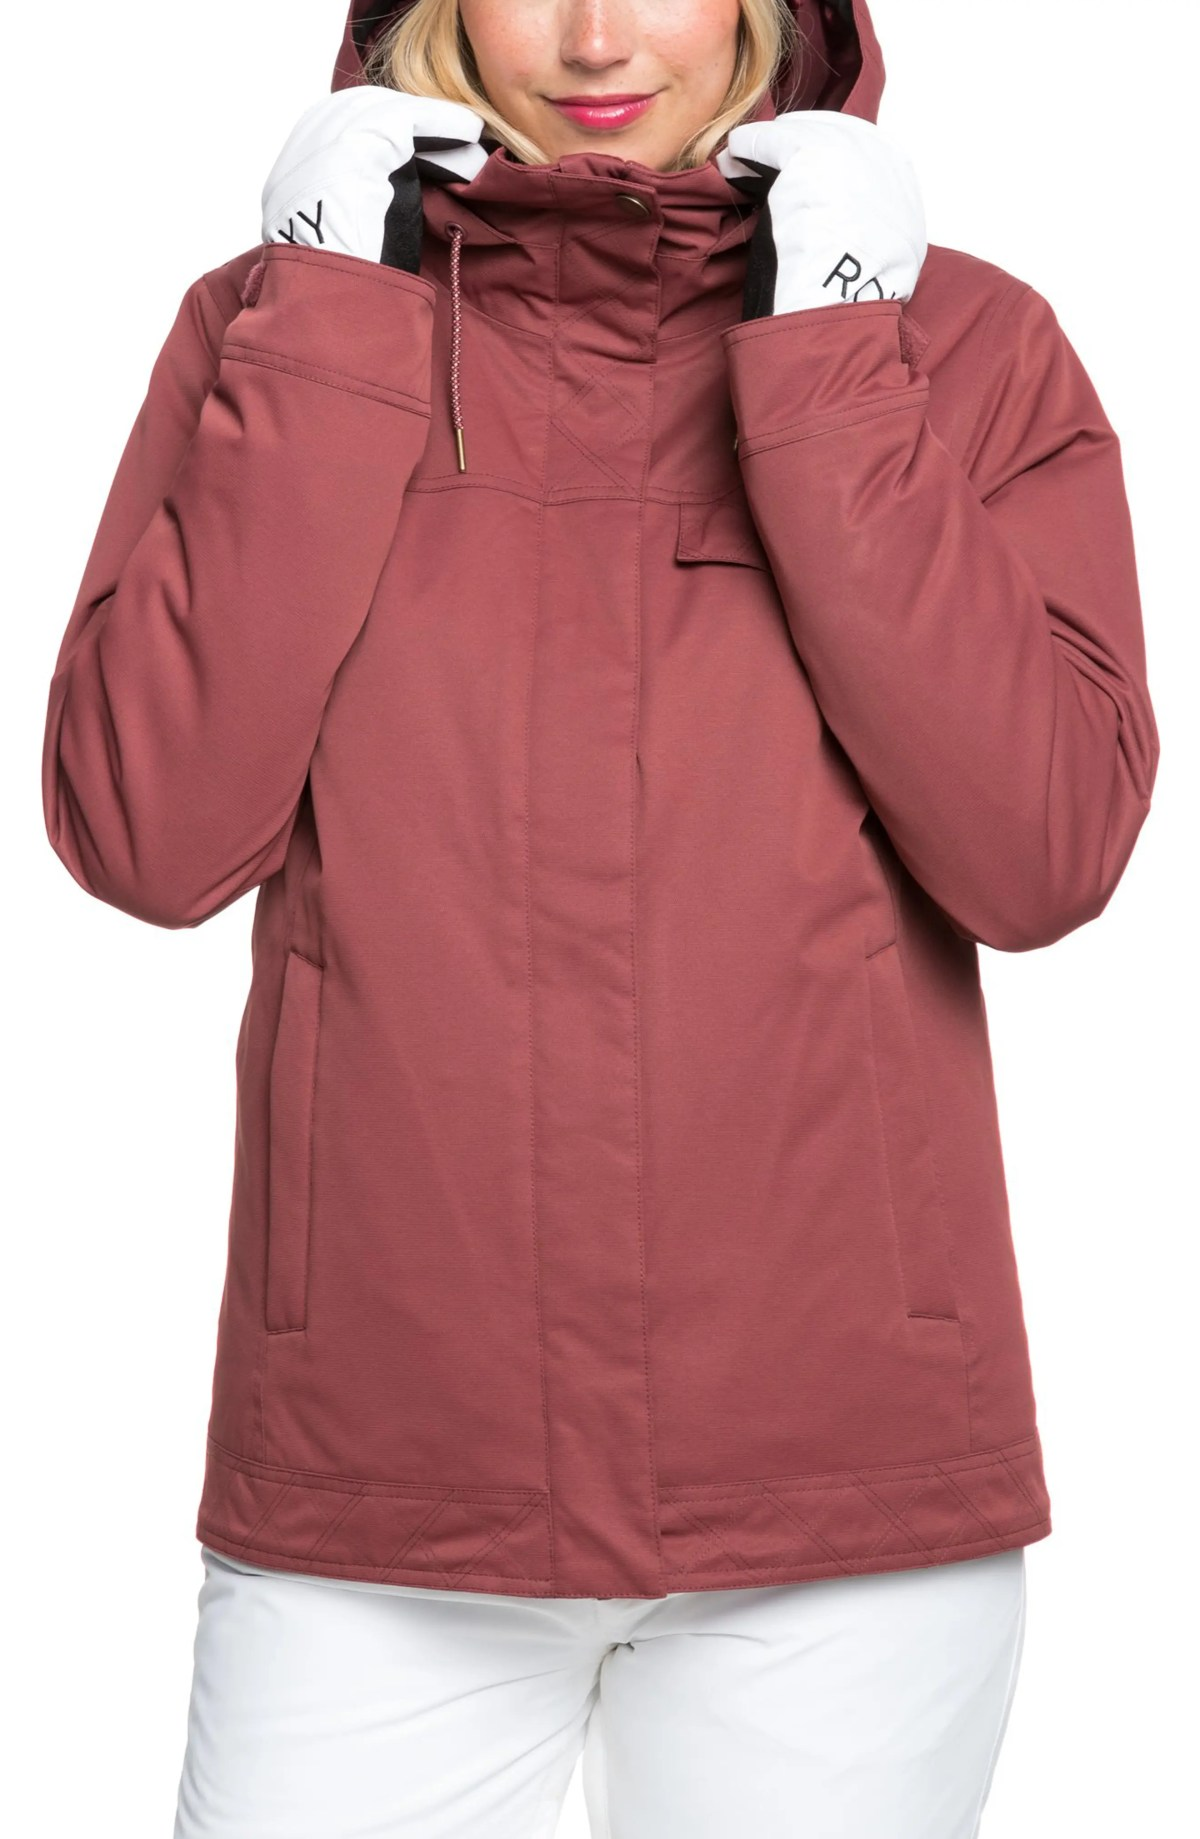 ROXY Billie Waterproof Hooded Snow Jacket, Main, color, OXBLOOD RED